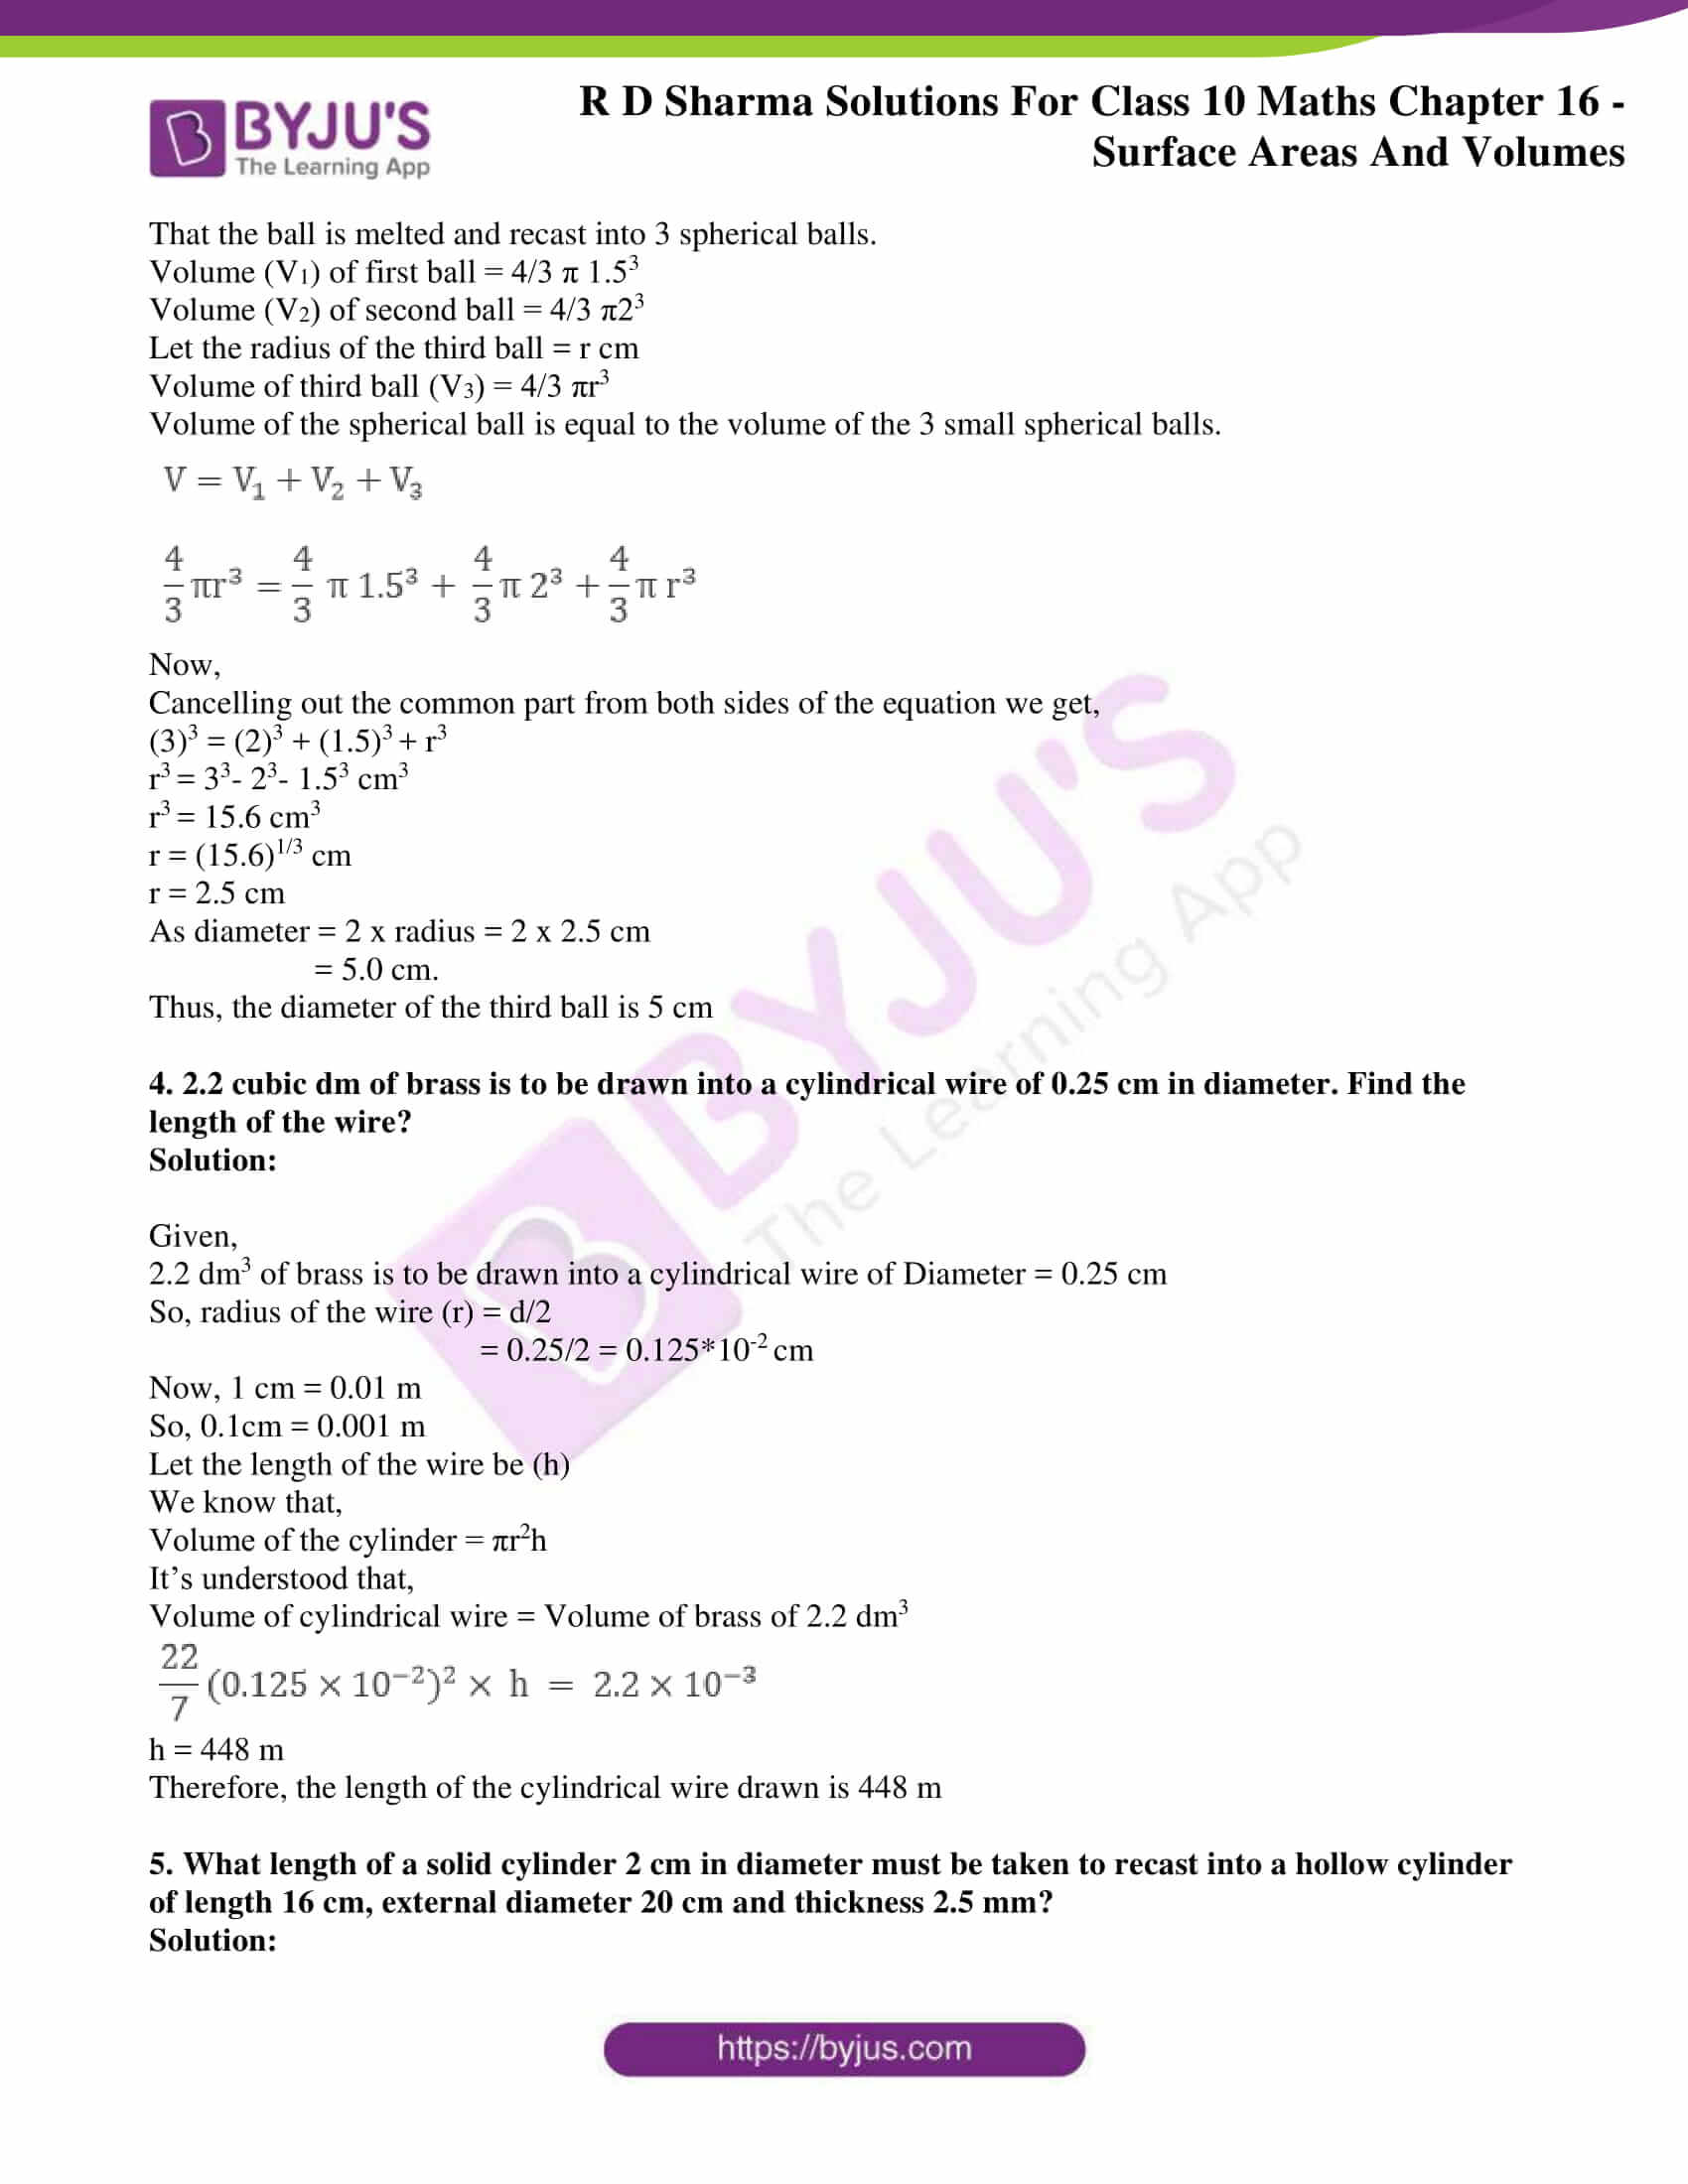 Rd Sharma Solutions For Class 10 Chapter 16 Surface Areas